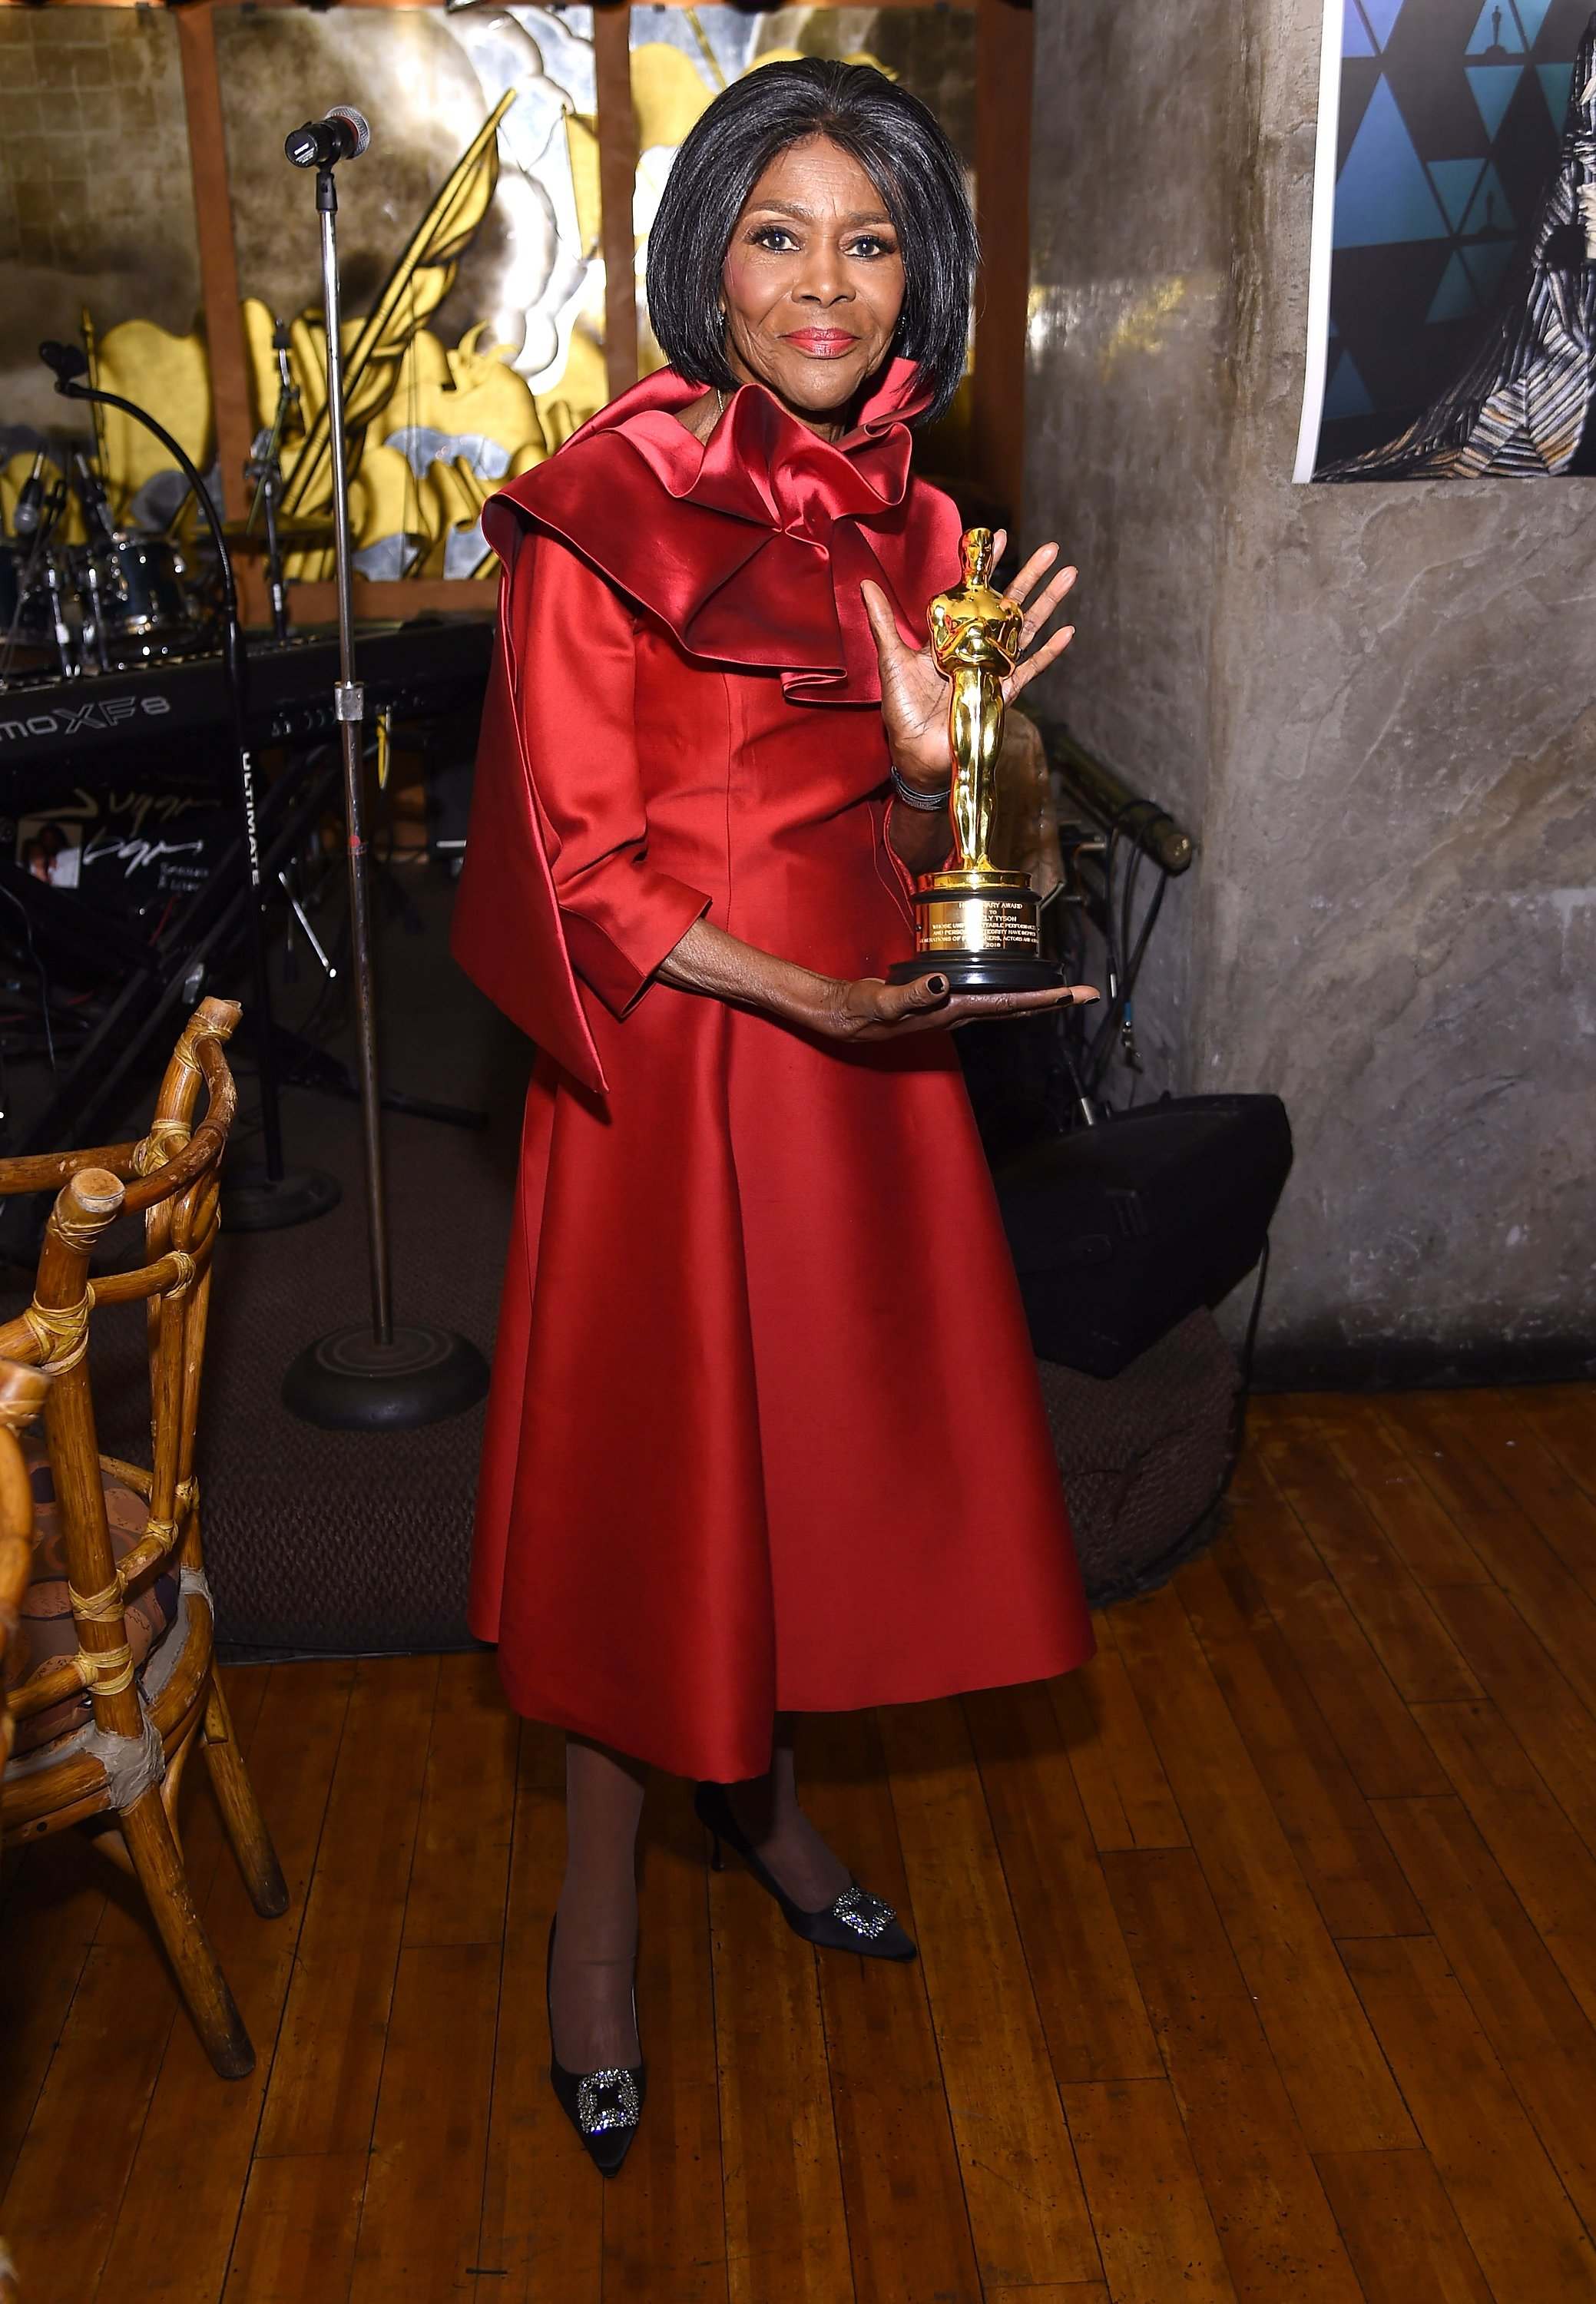 Cicely Tyson showing off her honorary Oscar at a private reception celebrating the award on December 8, 2018 in New York City. | Source: Getty